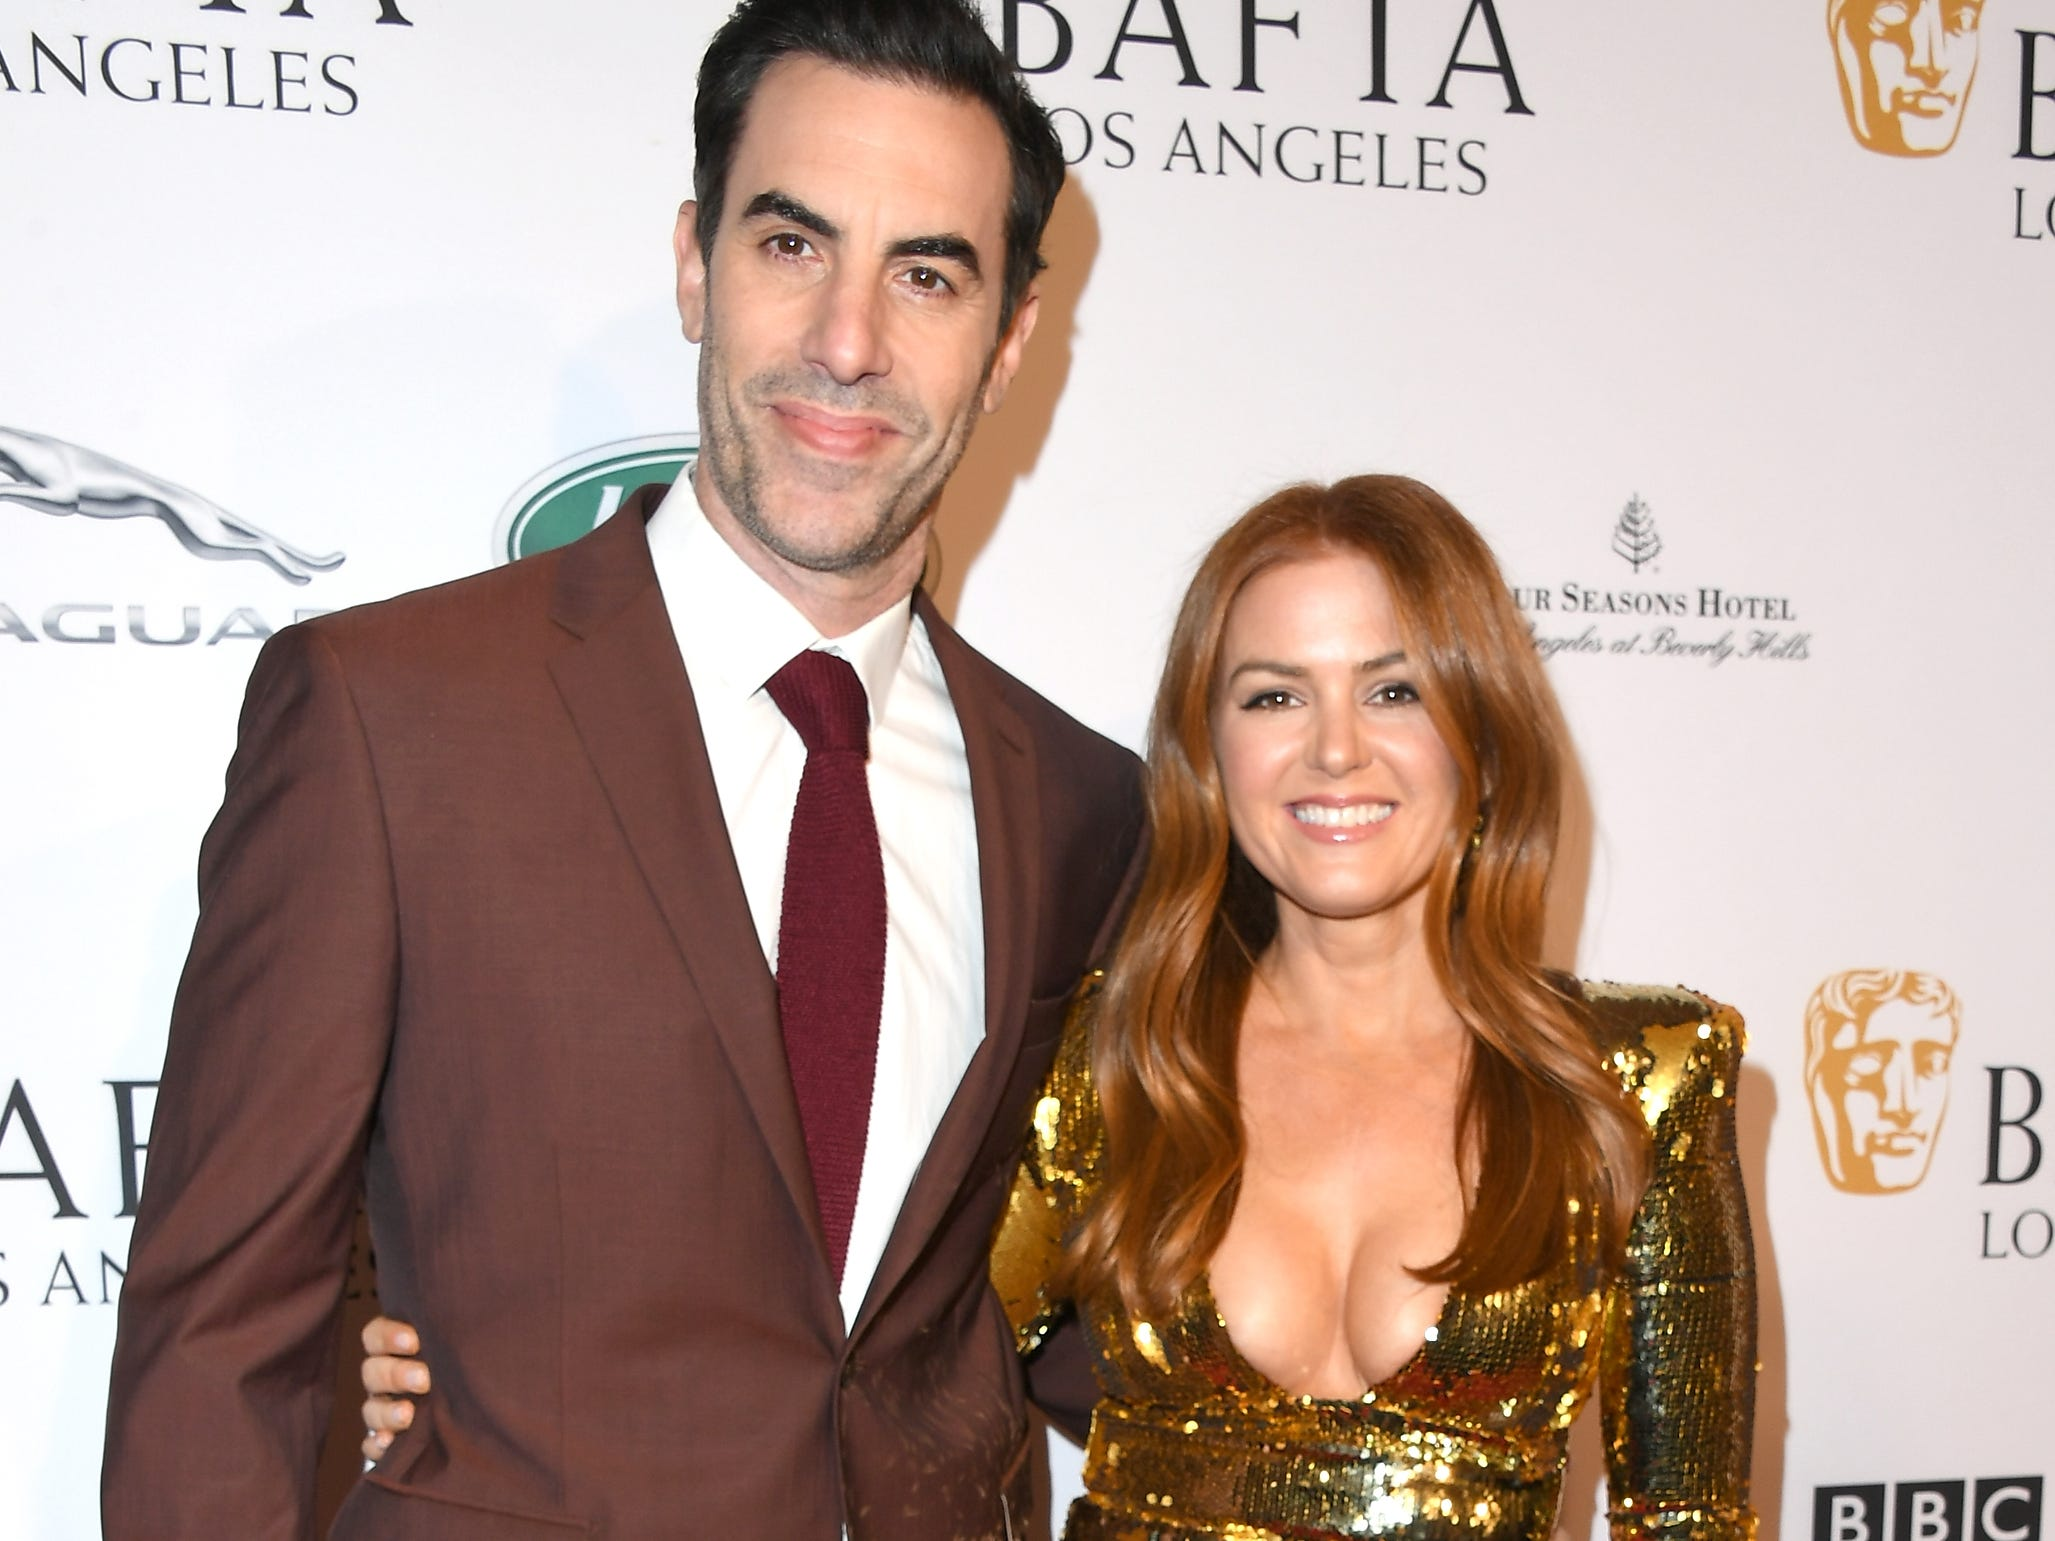 LOS ANGELES, CA - JANUARY 05:  Sacha Baron Cohen (L) and Isla Fisher attend The BAFTA Los Angeles Tea Party at Four Seasons Hotel Los Angeles at Beverly Hills on January 5, 2019 in Los Angeles, California.  (Photo by Jon Kopaloff/Getty Images) ORG XMIT: 775261683 ORIG FILE ID: 1077926658